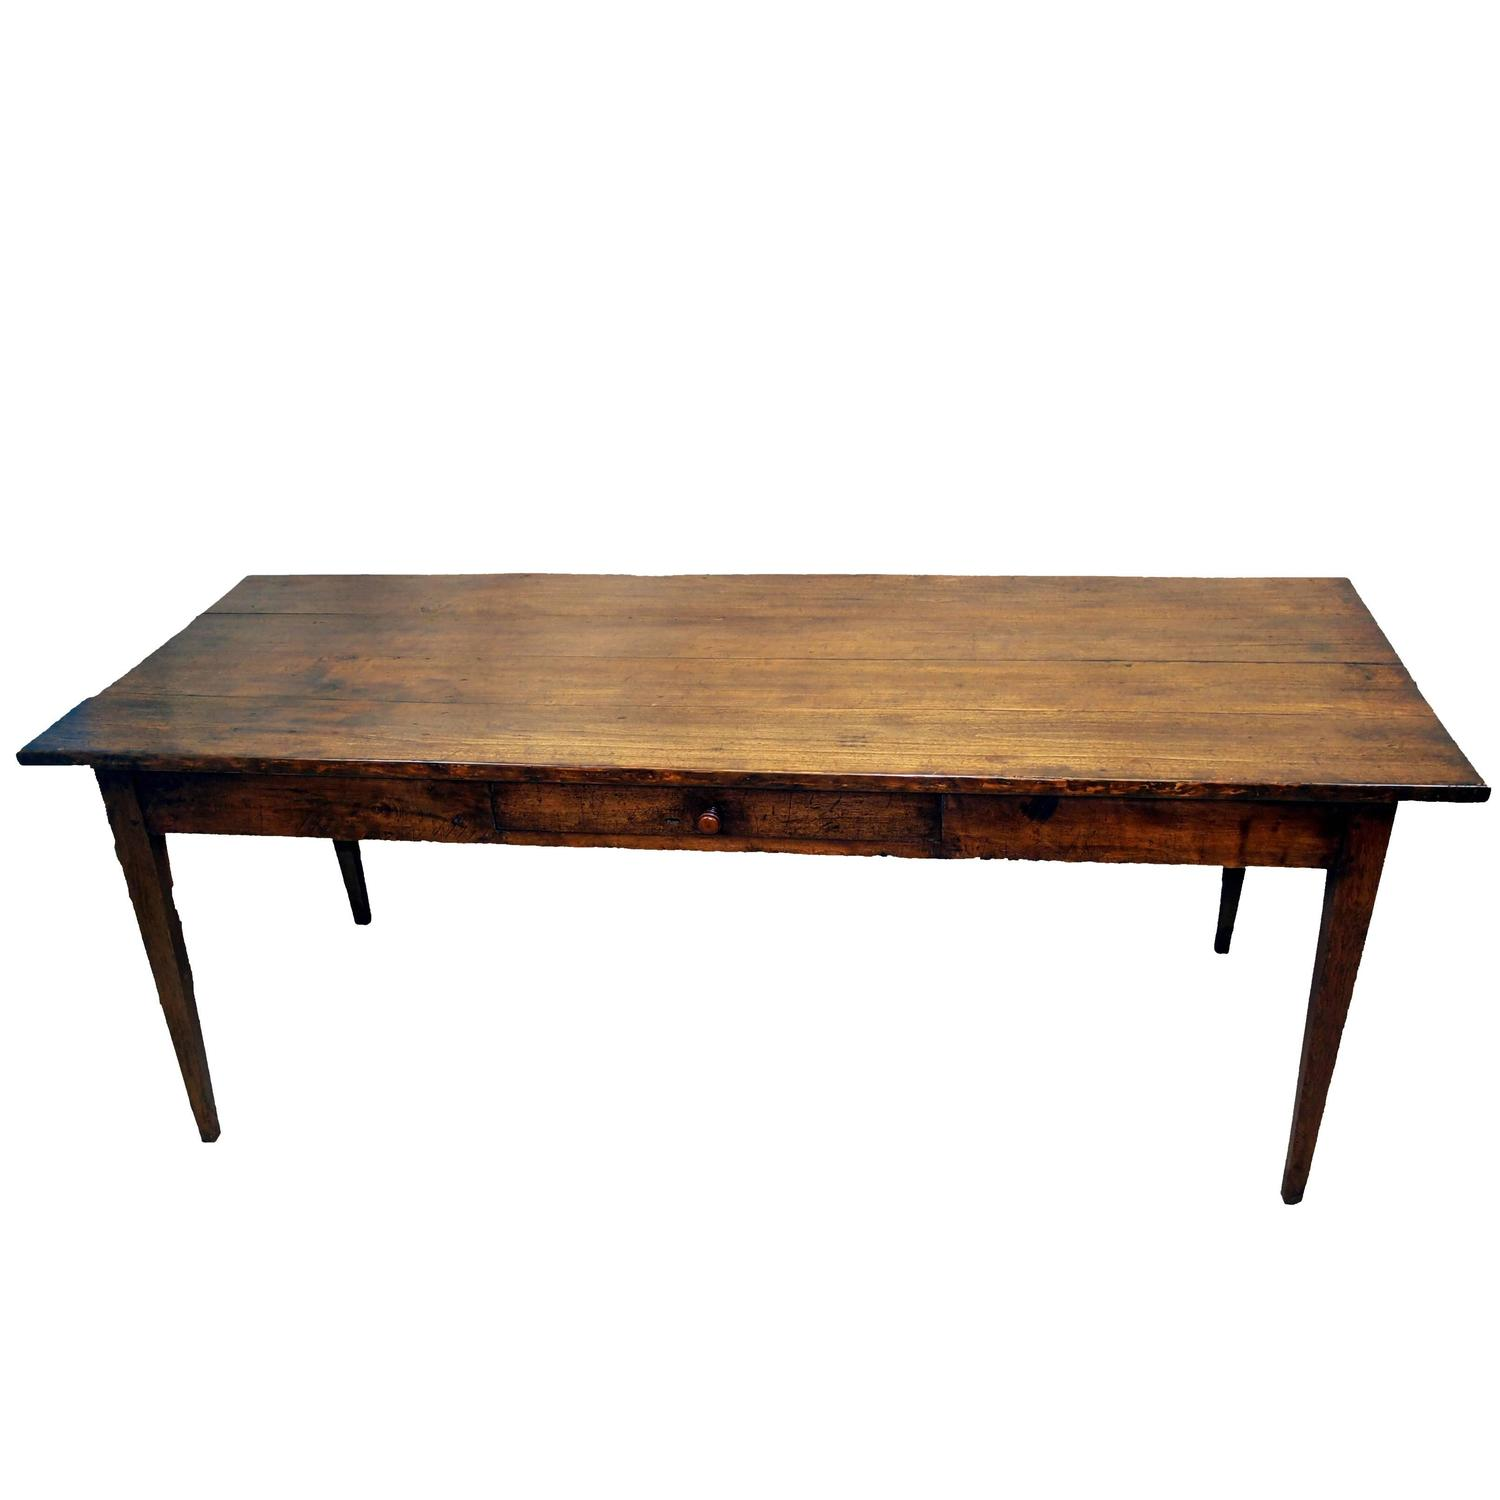 Antique French Farmhouse Dining Table at 1stdibs